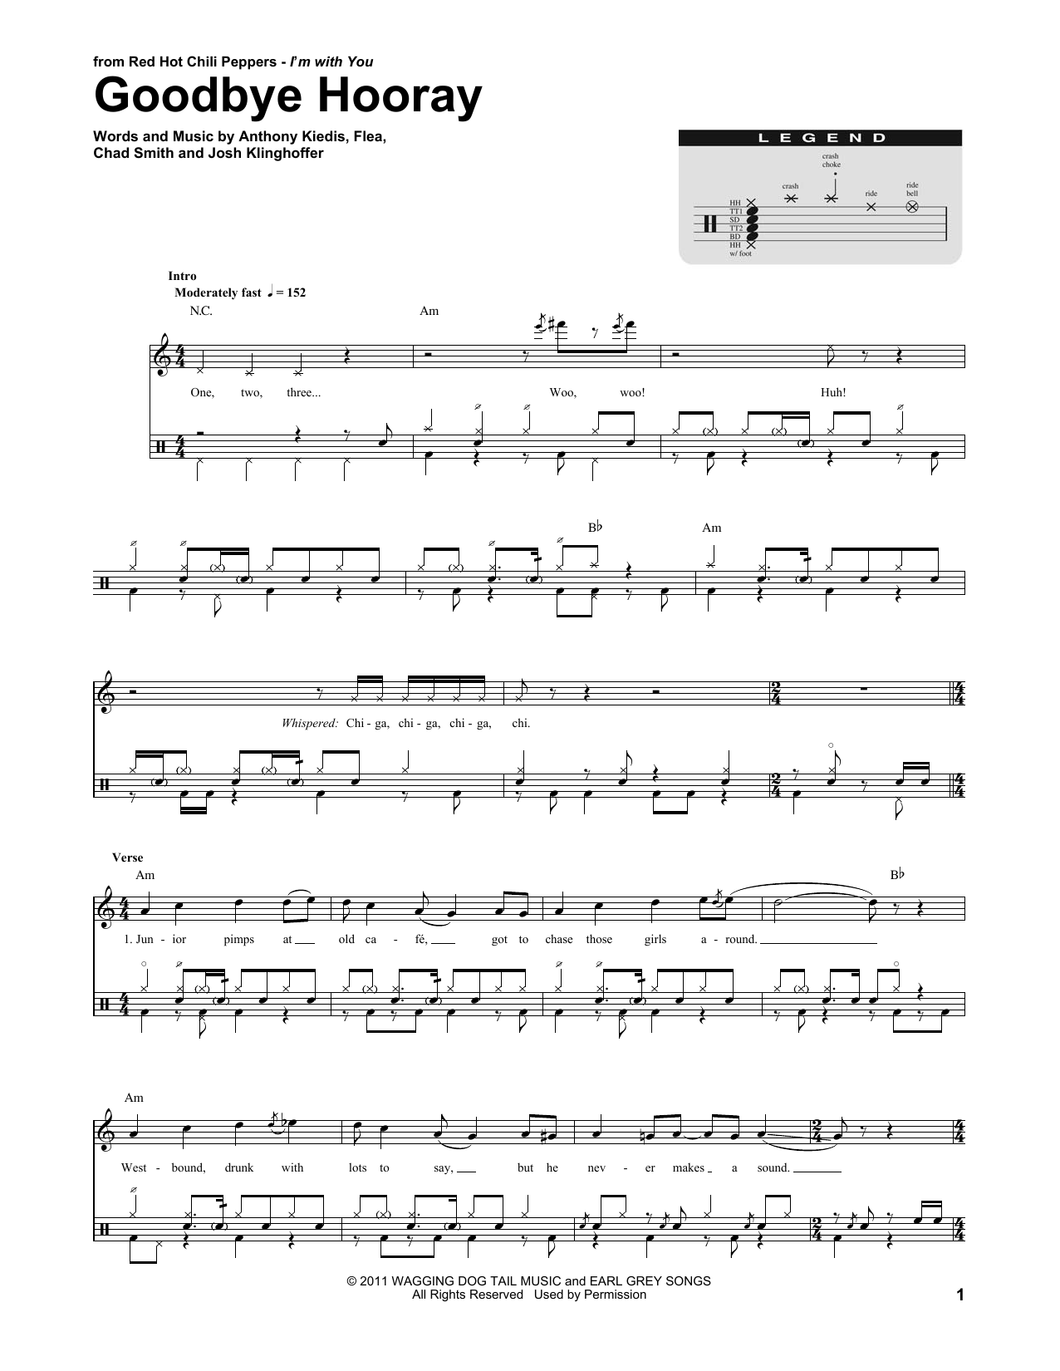 Goodbye Hooray - Red Hot Chili Peppers - Full Drum Transcription / Drum Sheet Music - SheetMusicDirect DT